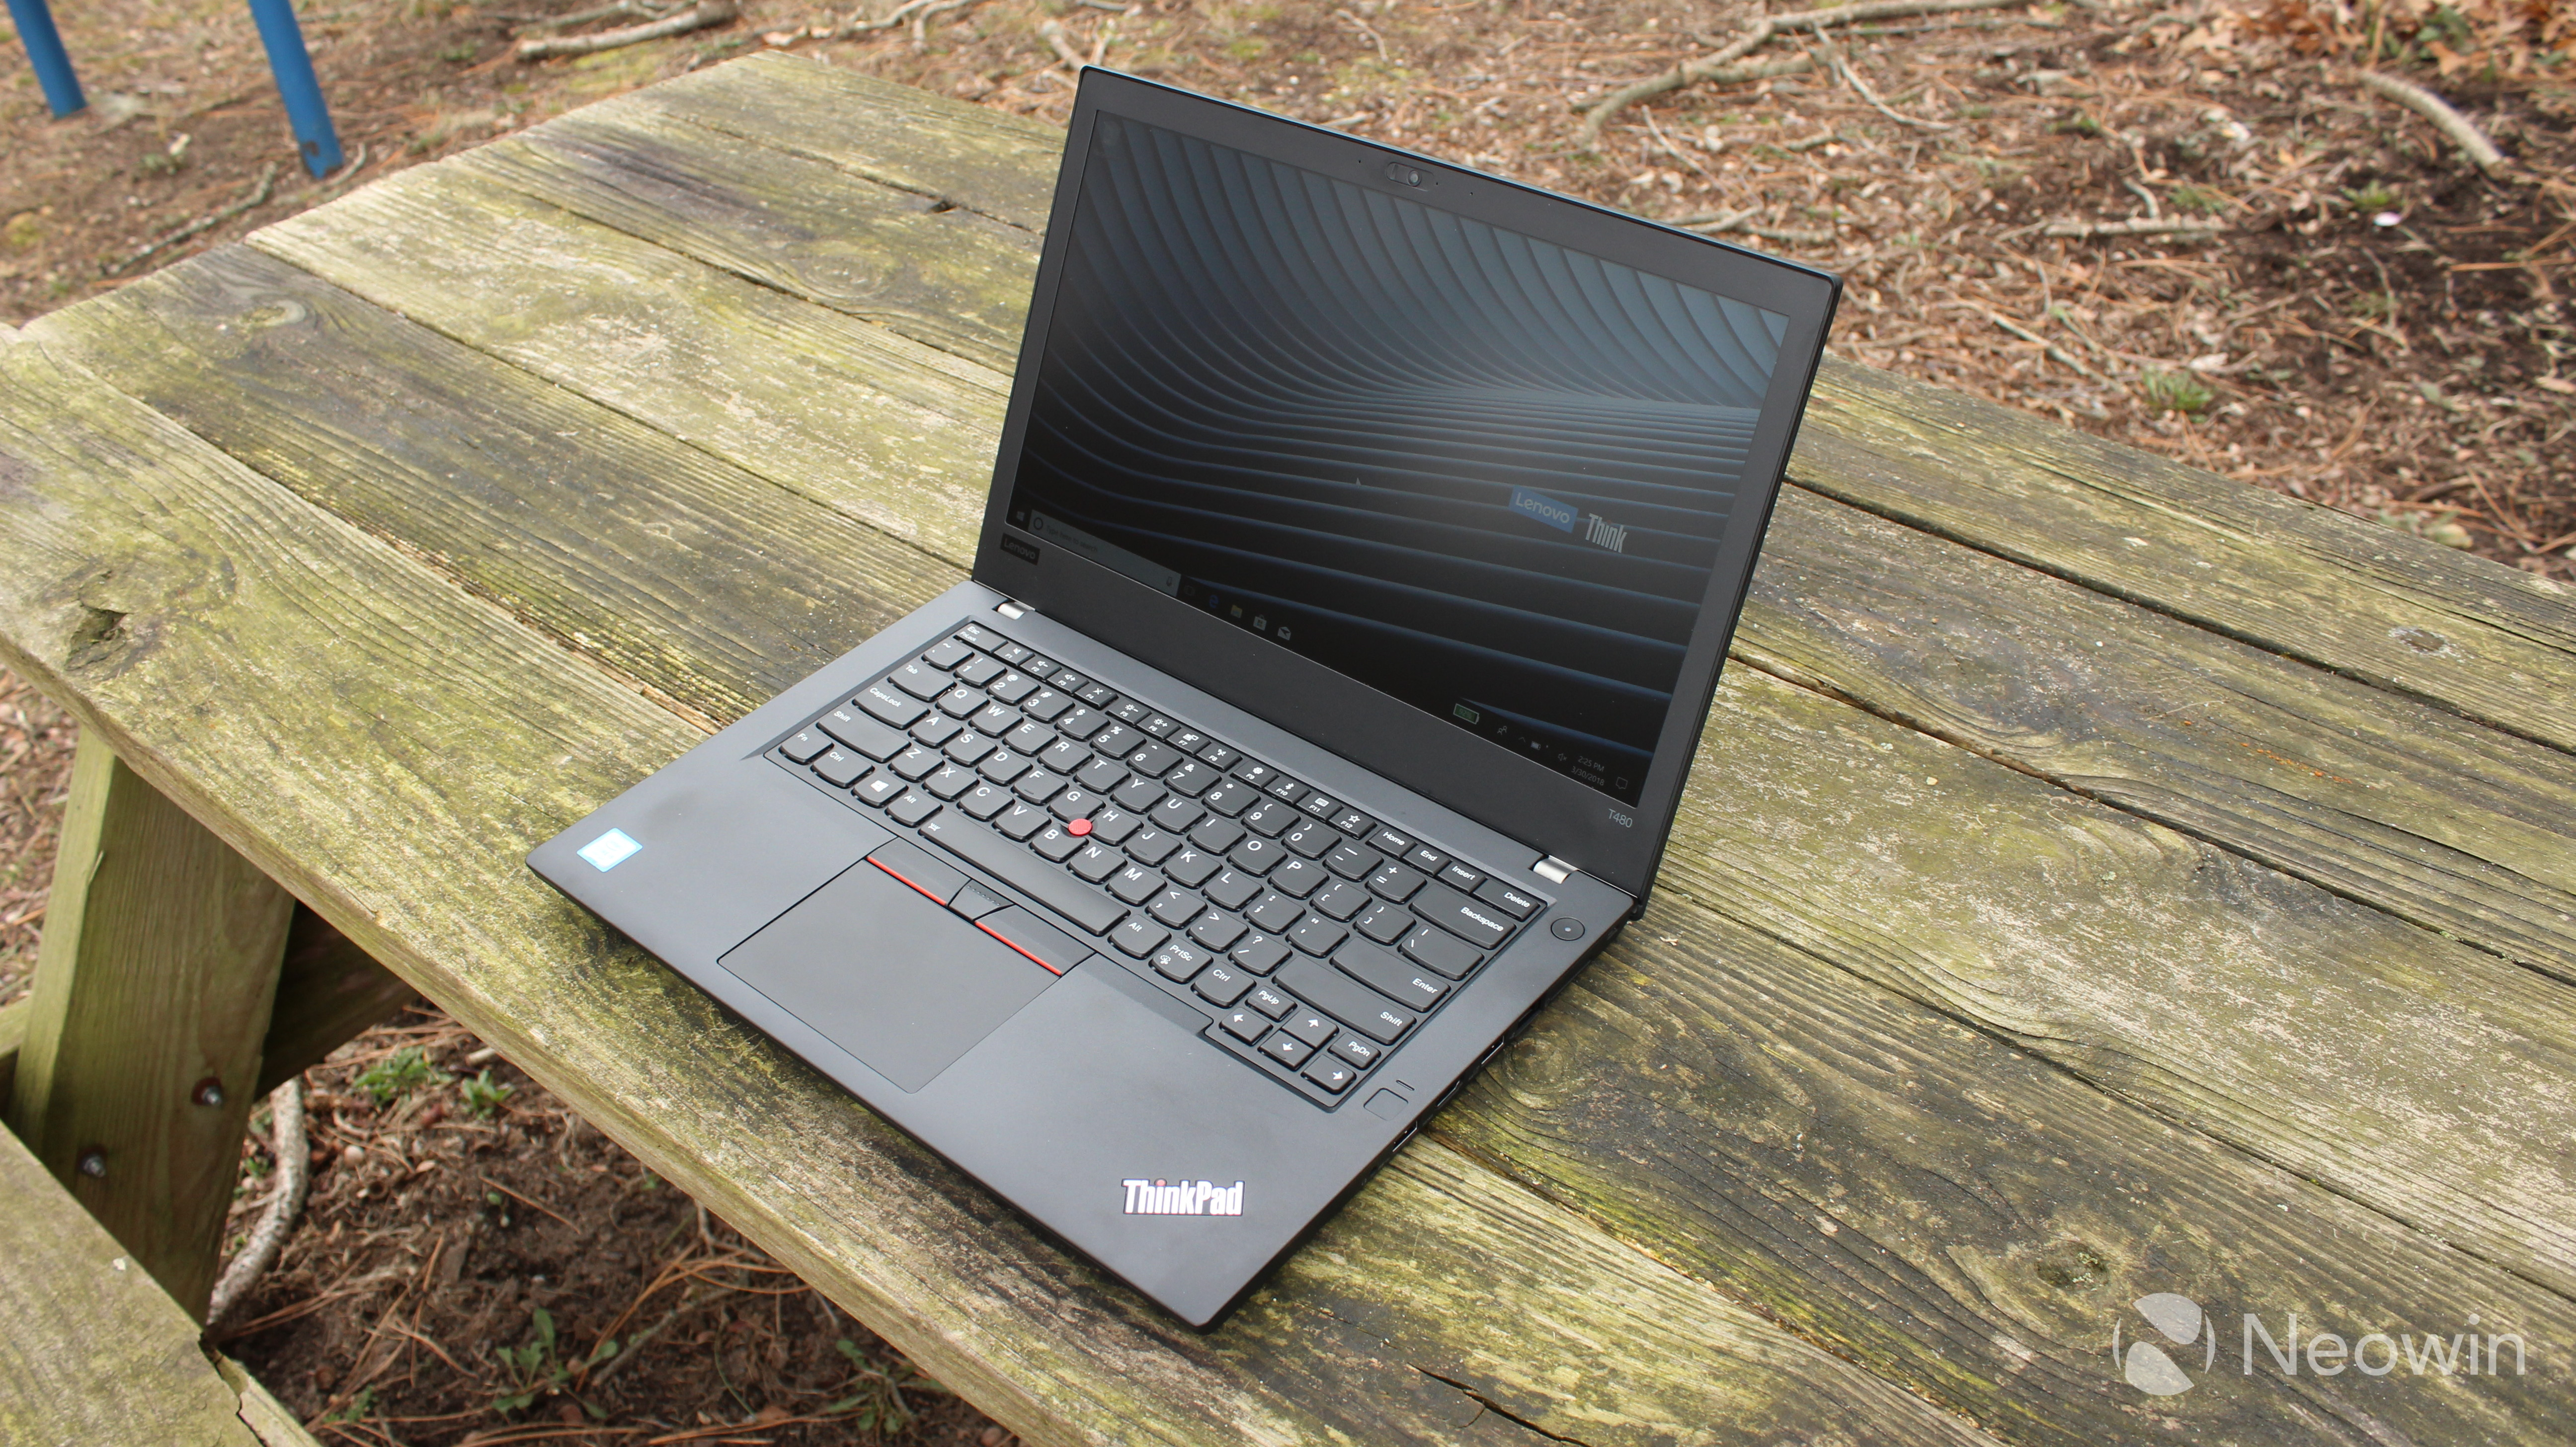 Lenovo ThinkPad T480 unboxing and first impressions - Neowin